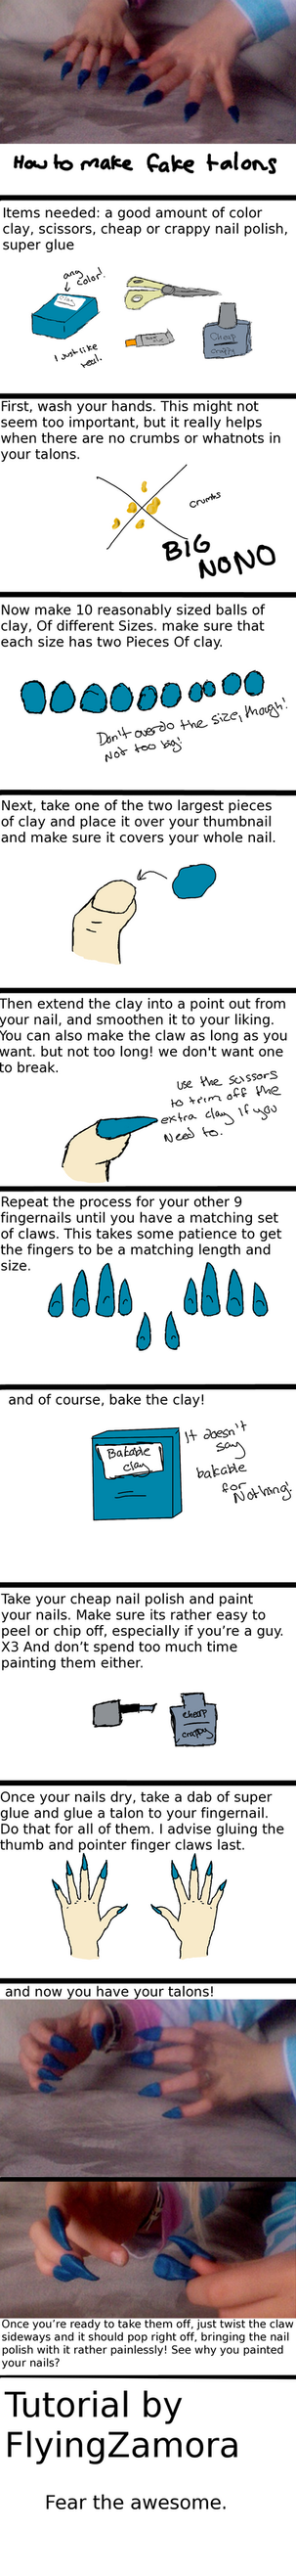 how to make fake talons by Galaxy-Squid